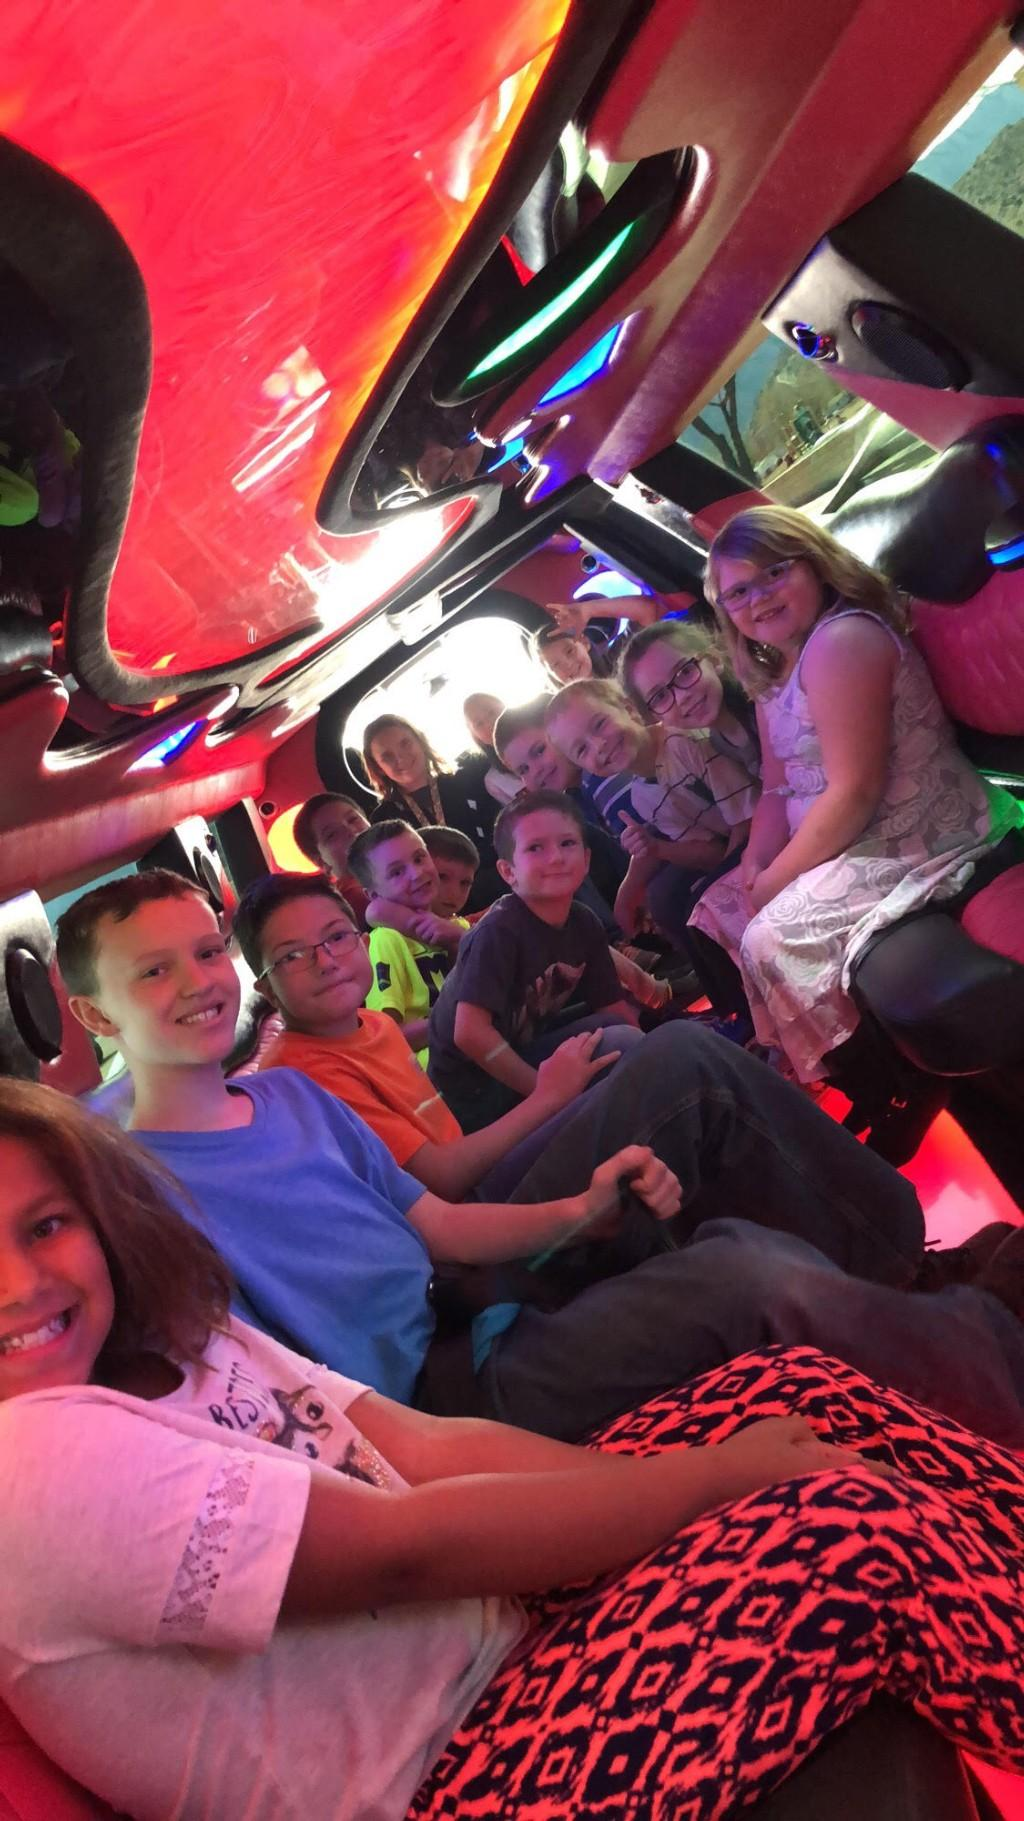 Limo Ride Fundraiser Winners!